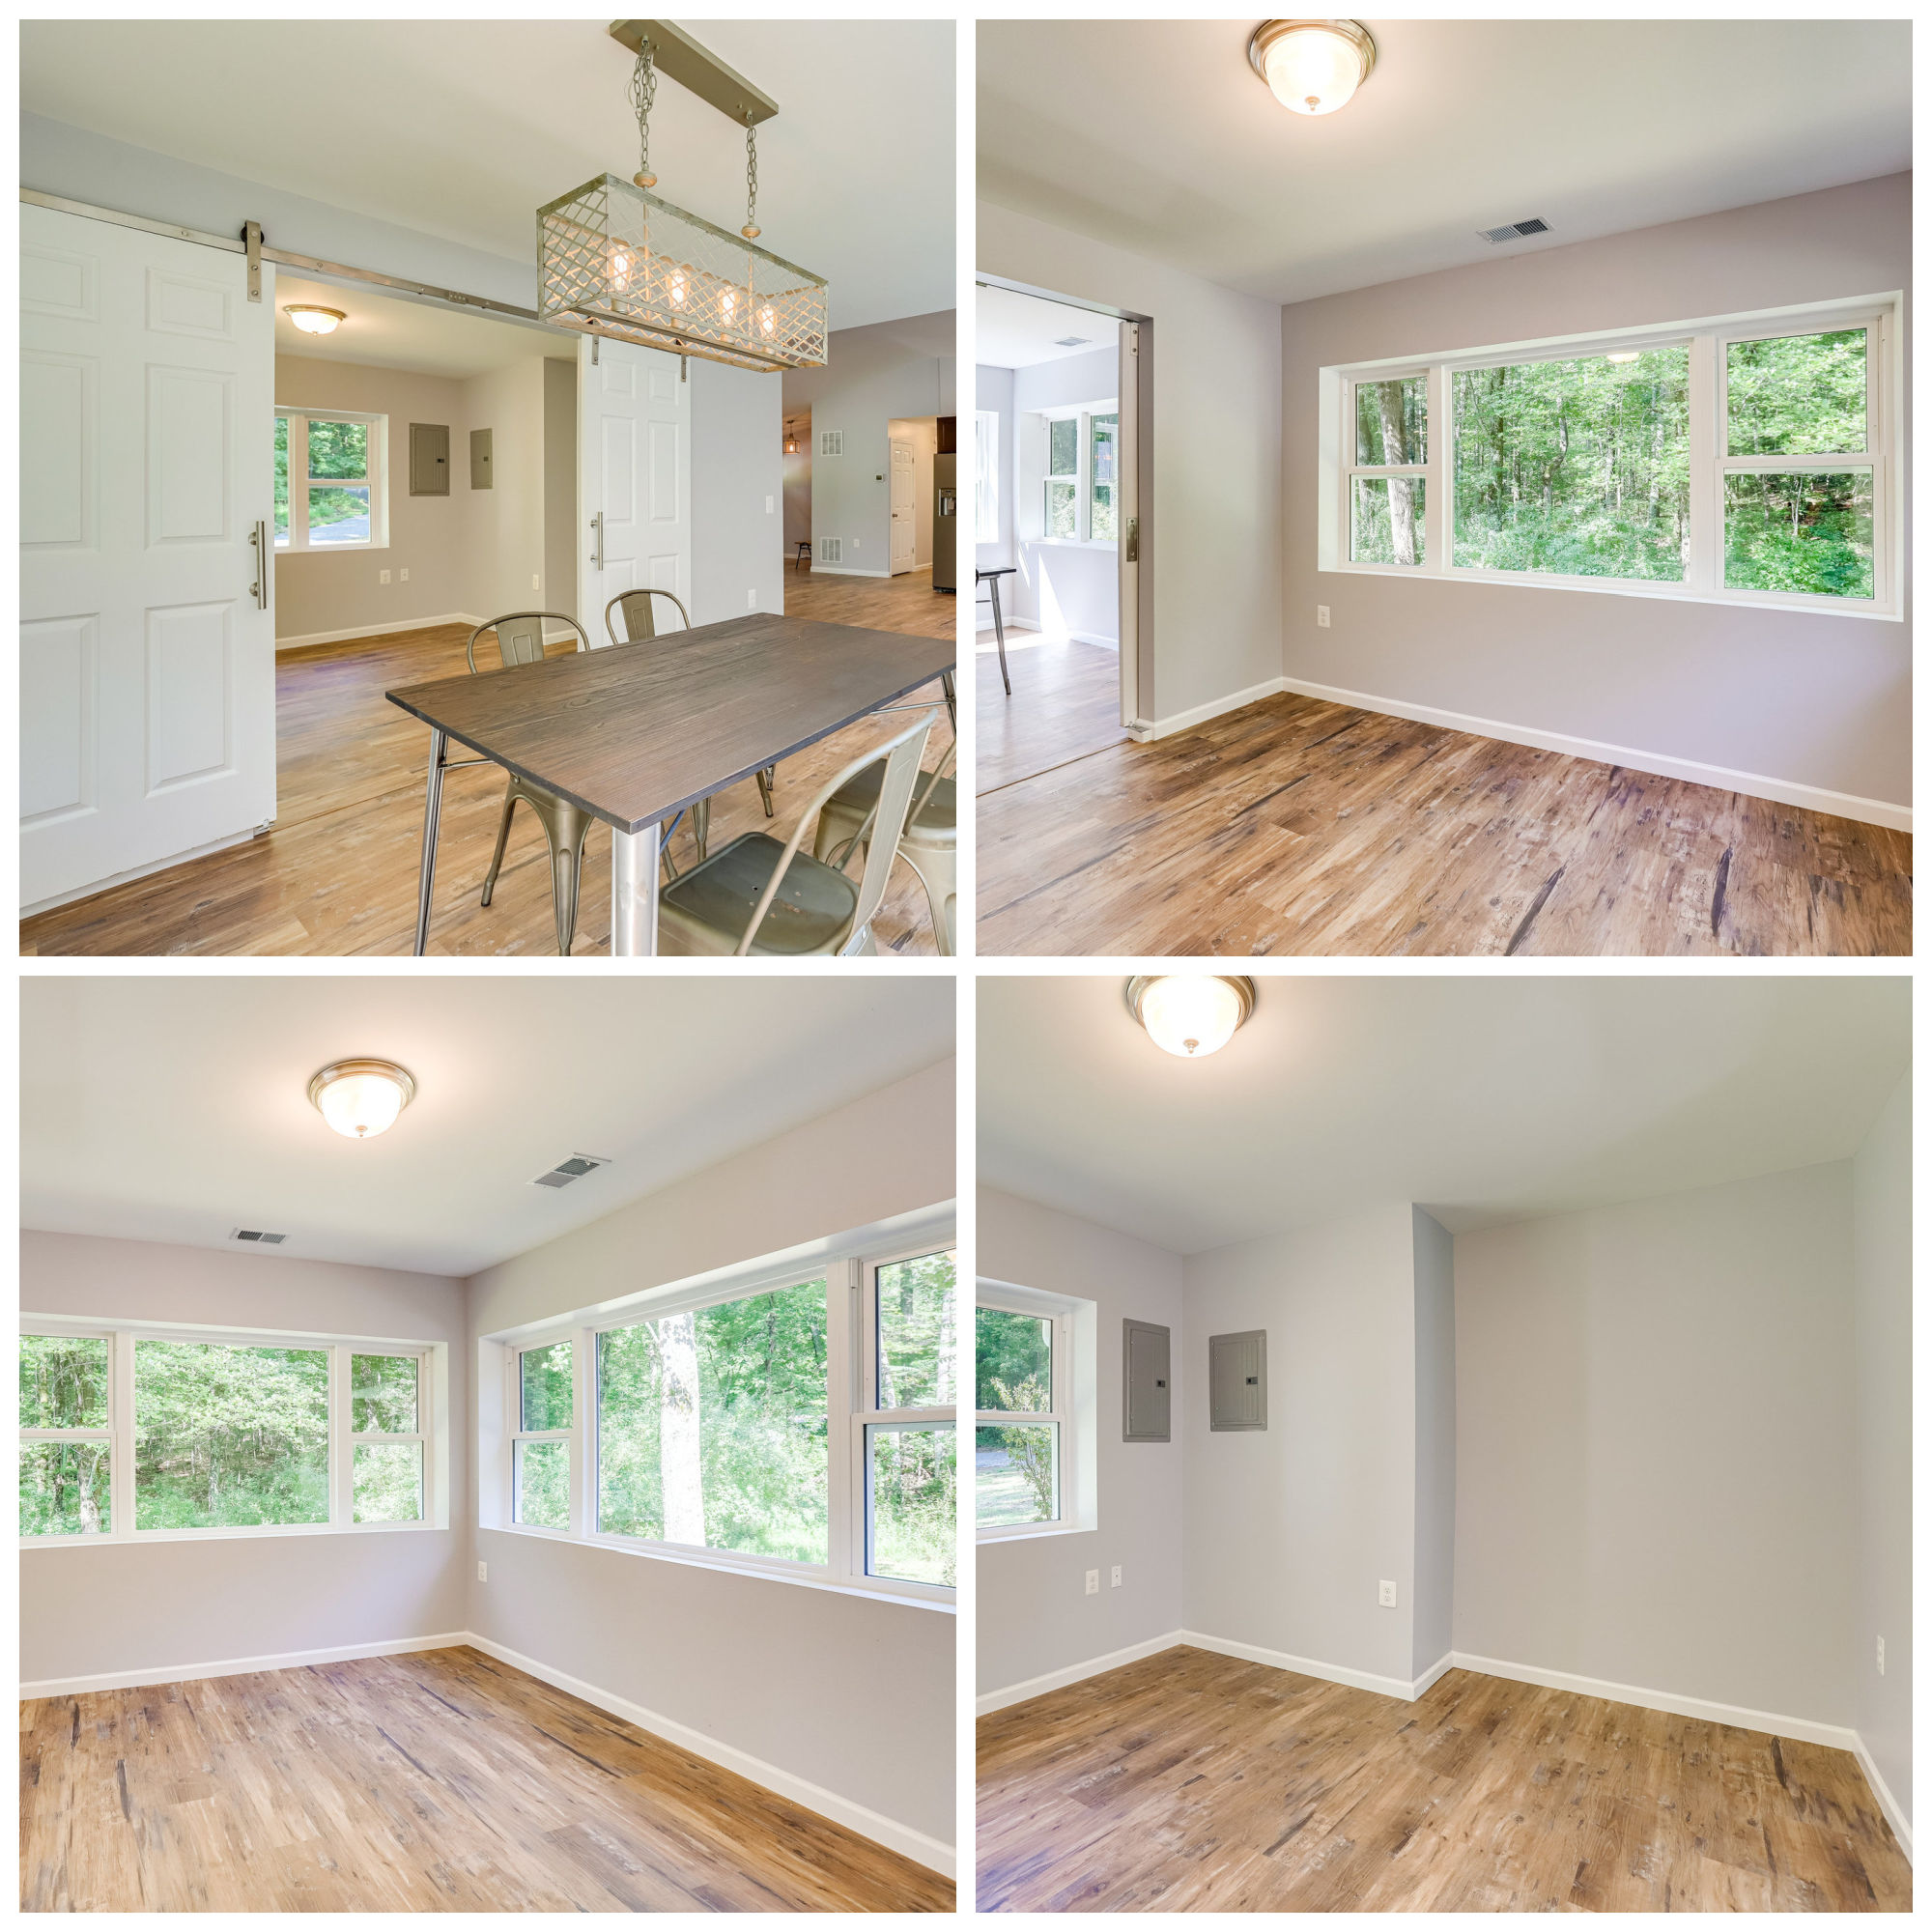 584 Aaron Mountain Rd, Castleton- Office or Possible 4th Bedroom